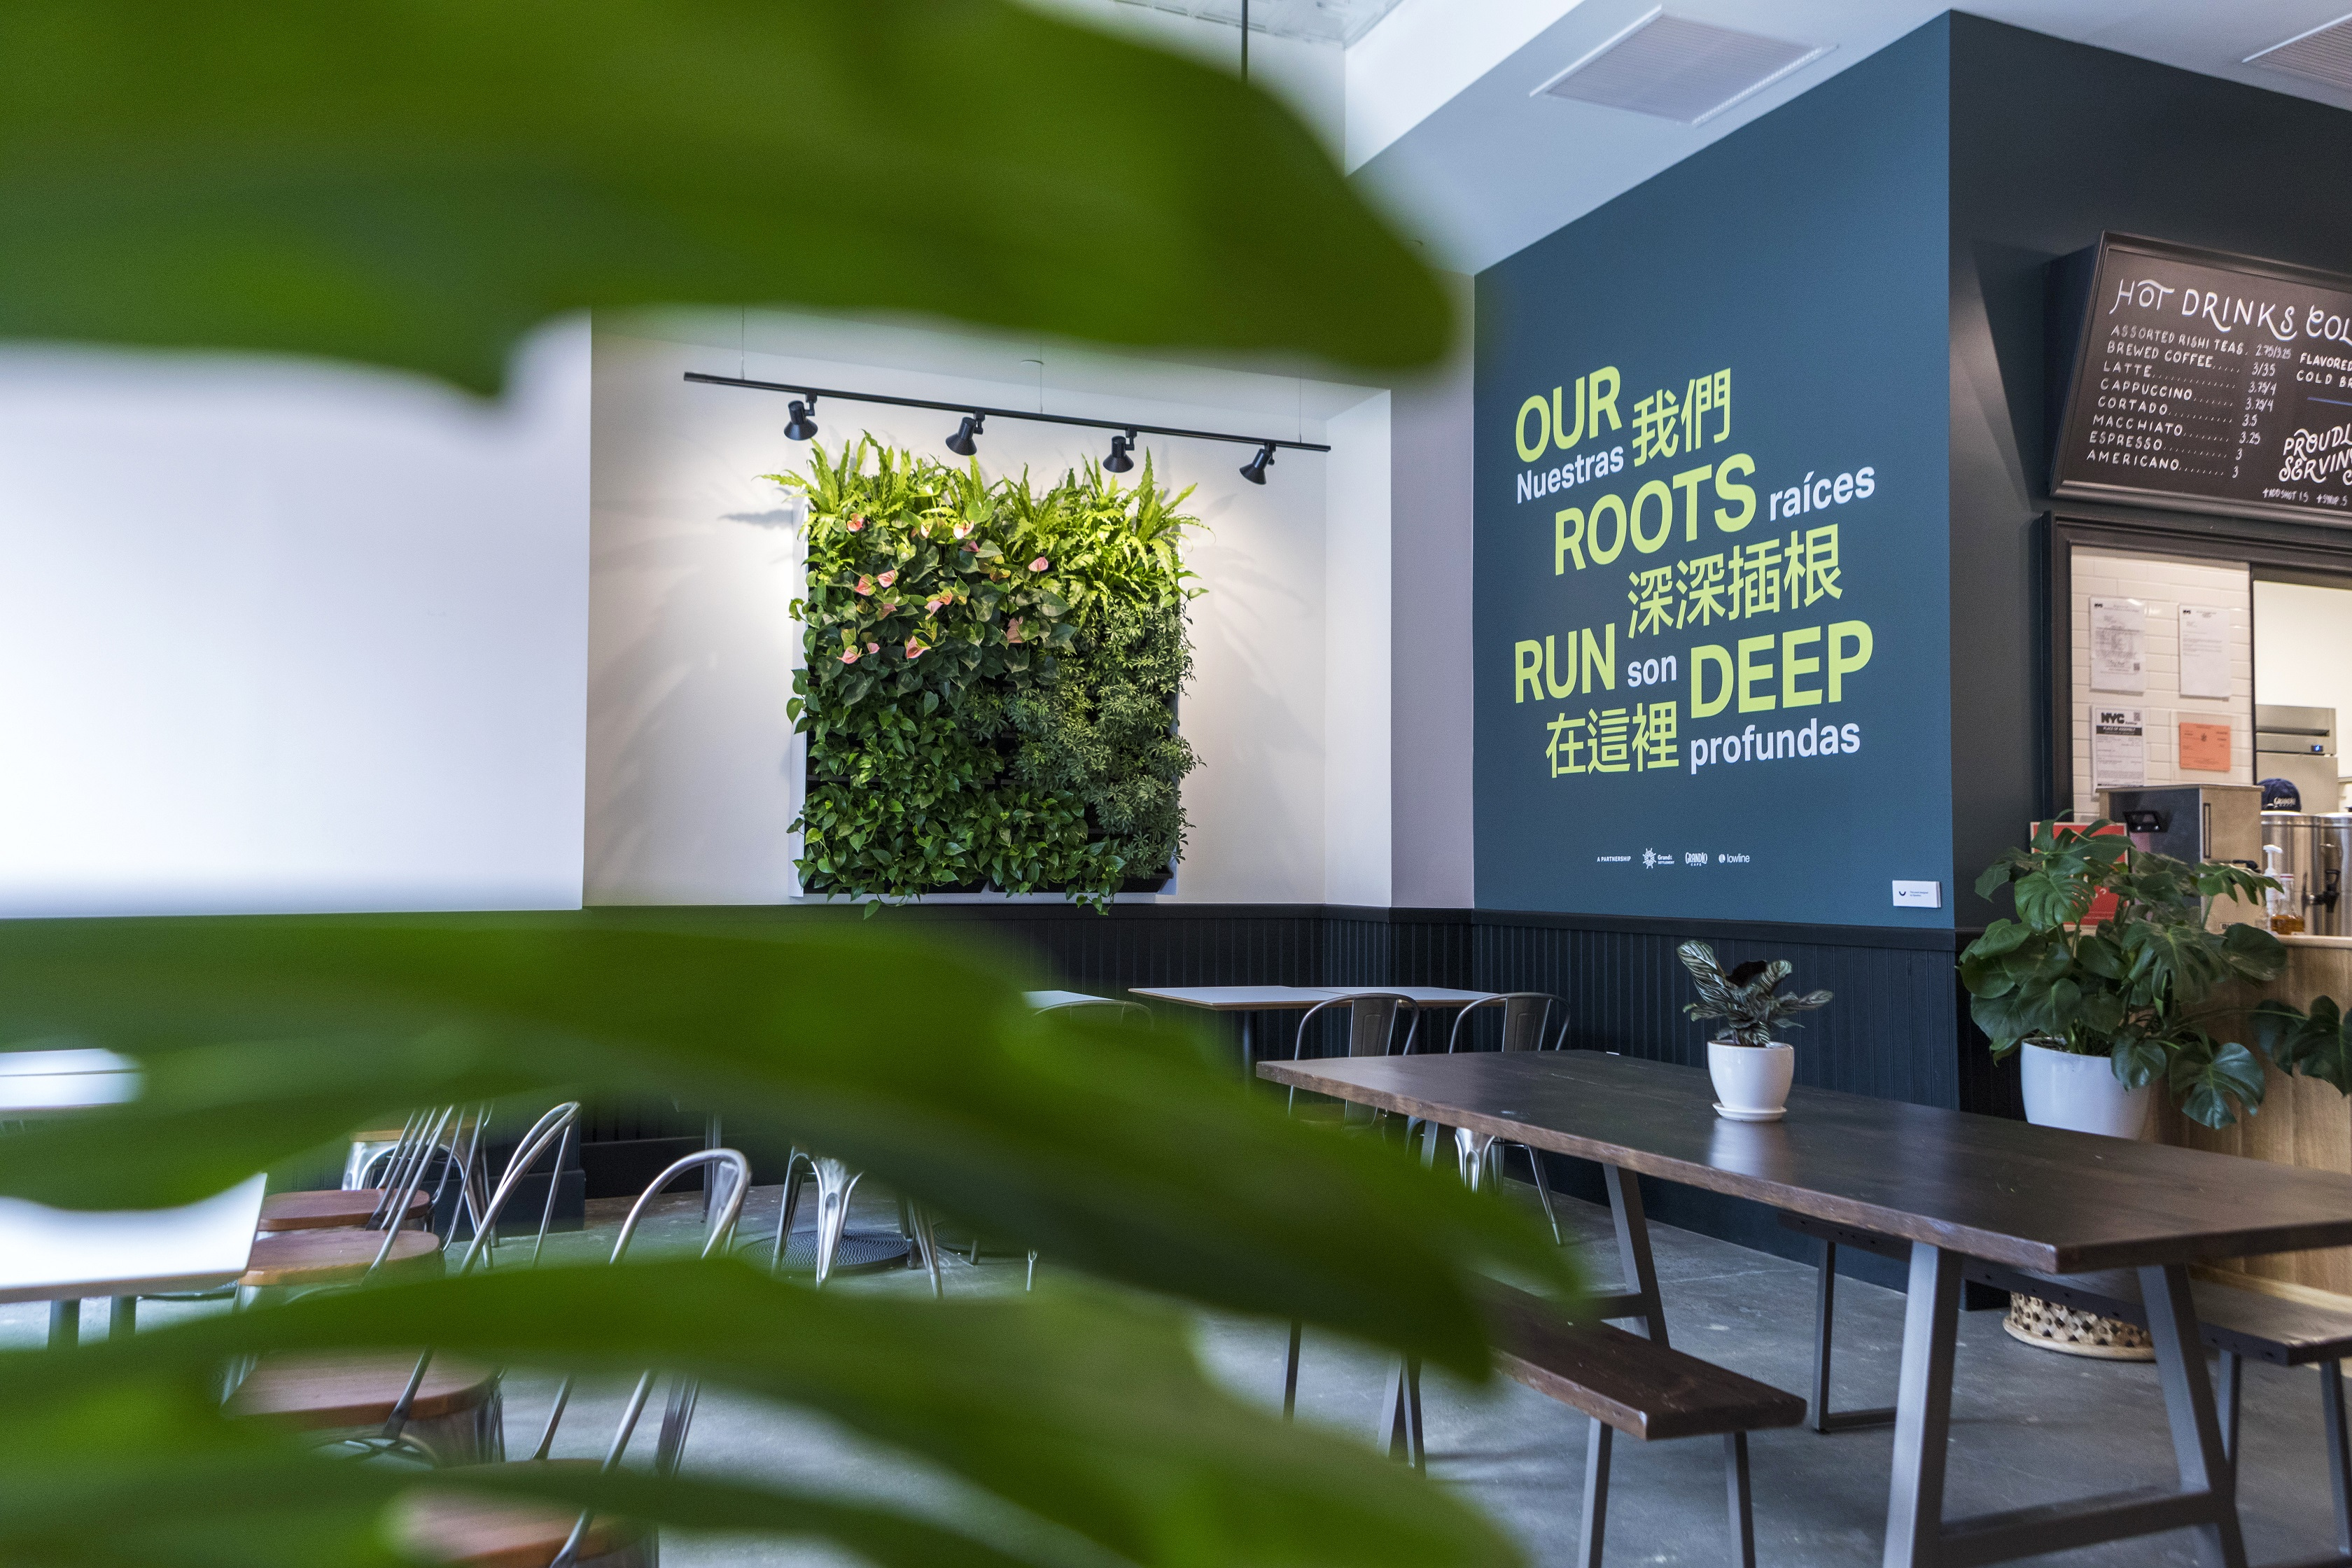 The introduction of crisp green plants into this café create a great conversation piece as customers catch up with friends.